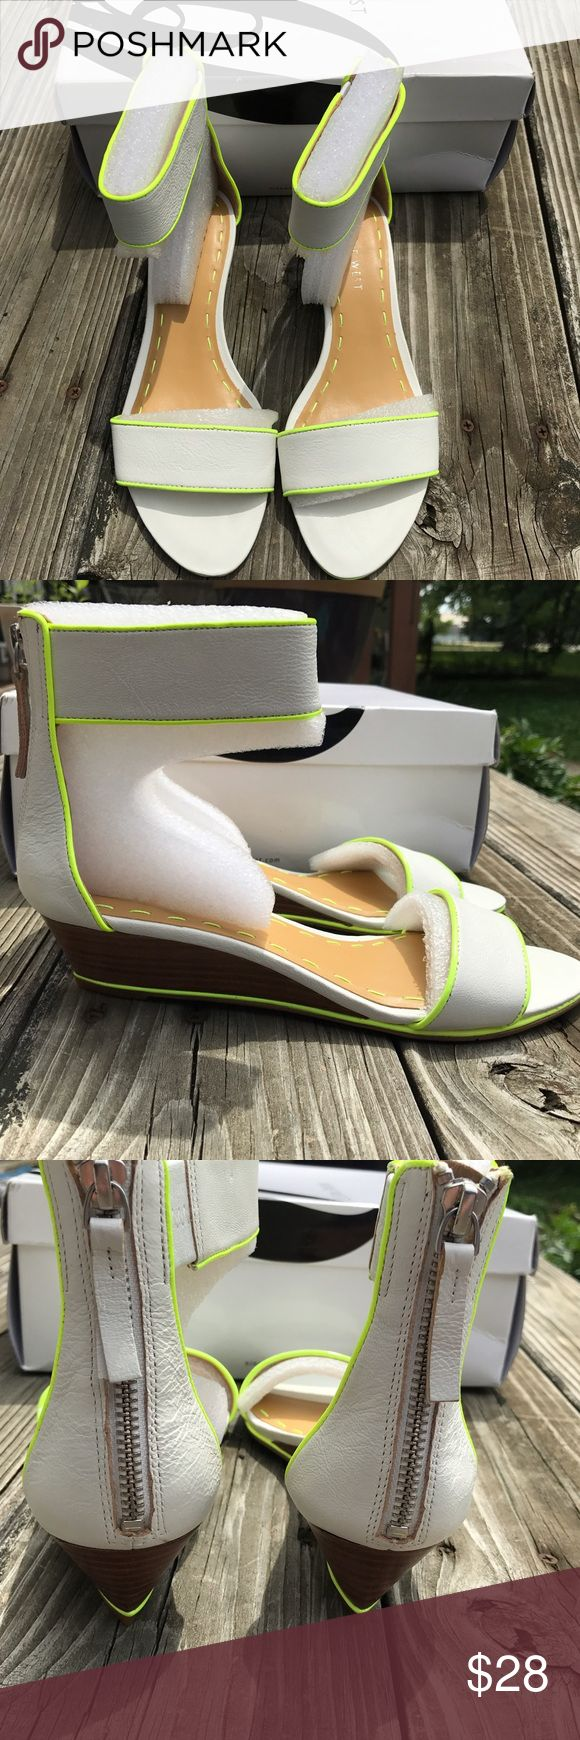 Nine West Vilta Demi Wedge Sandal Size 6.5, brand new in box. White with lime green trim. Bundle with additional items for a 20% discount. Sorry, no trades. Nine West Shoes Sandals